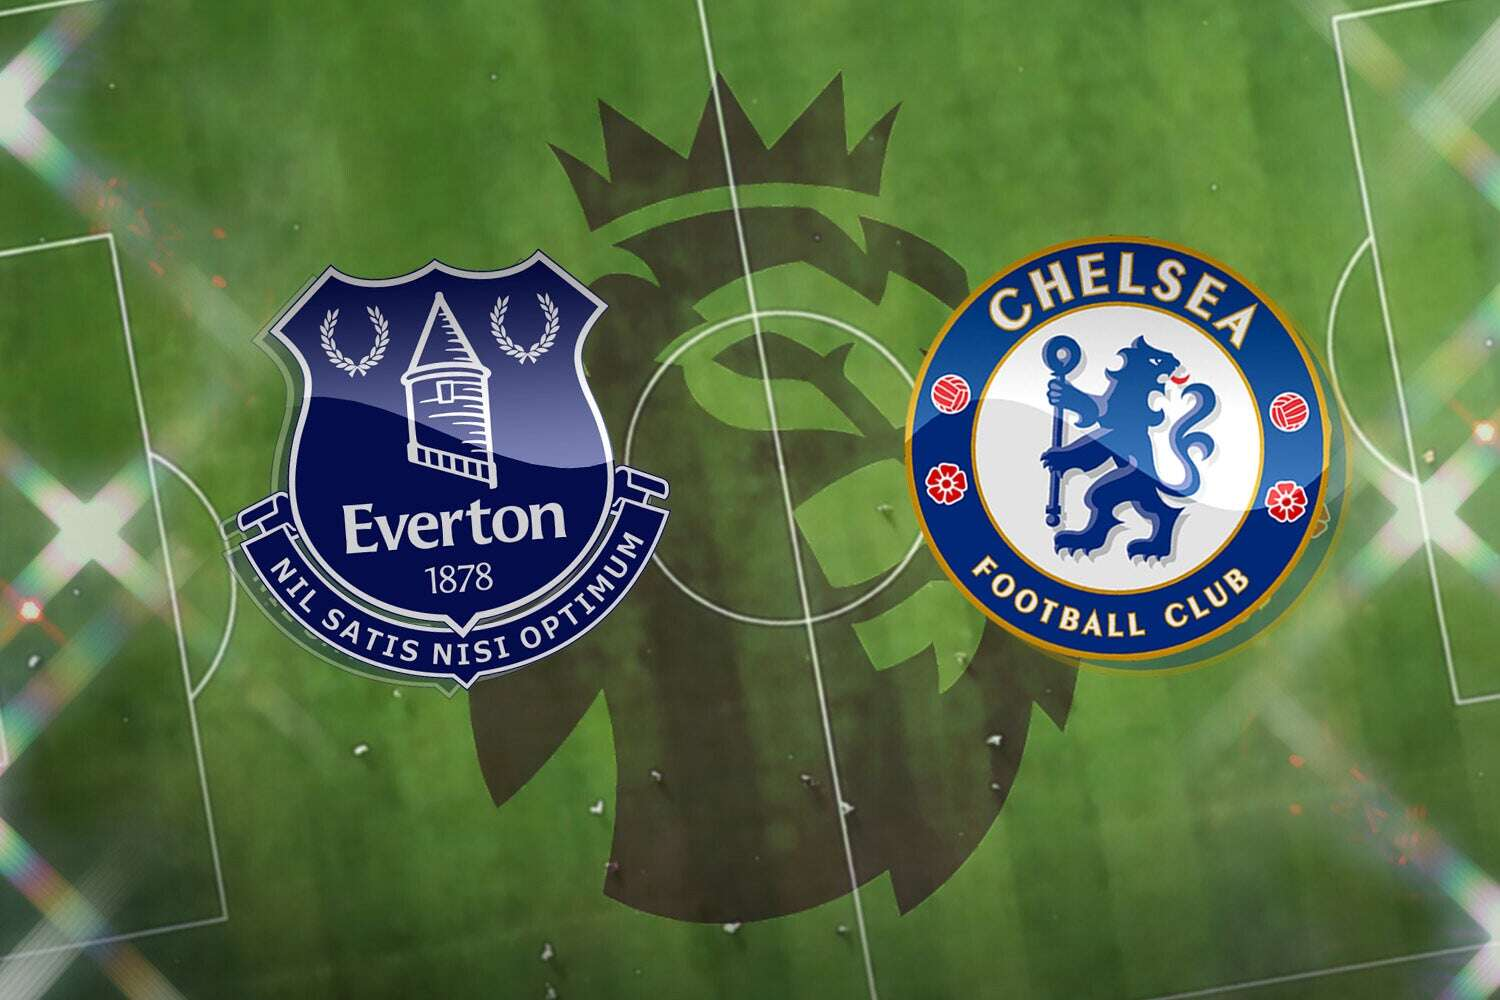 Premier League Matchday: Everton welcome Chelsea at the Goodison park, Liverpool